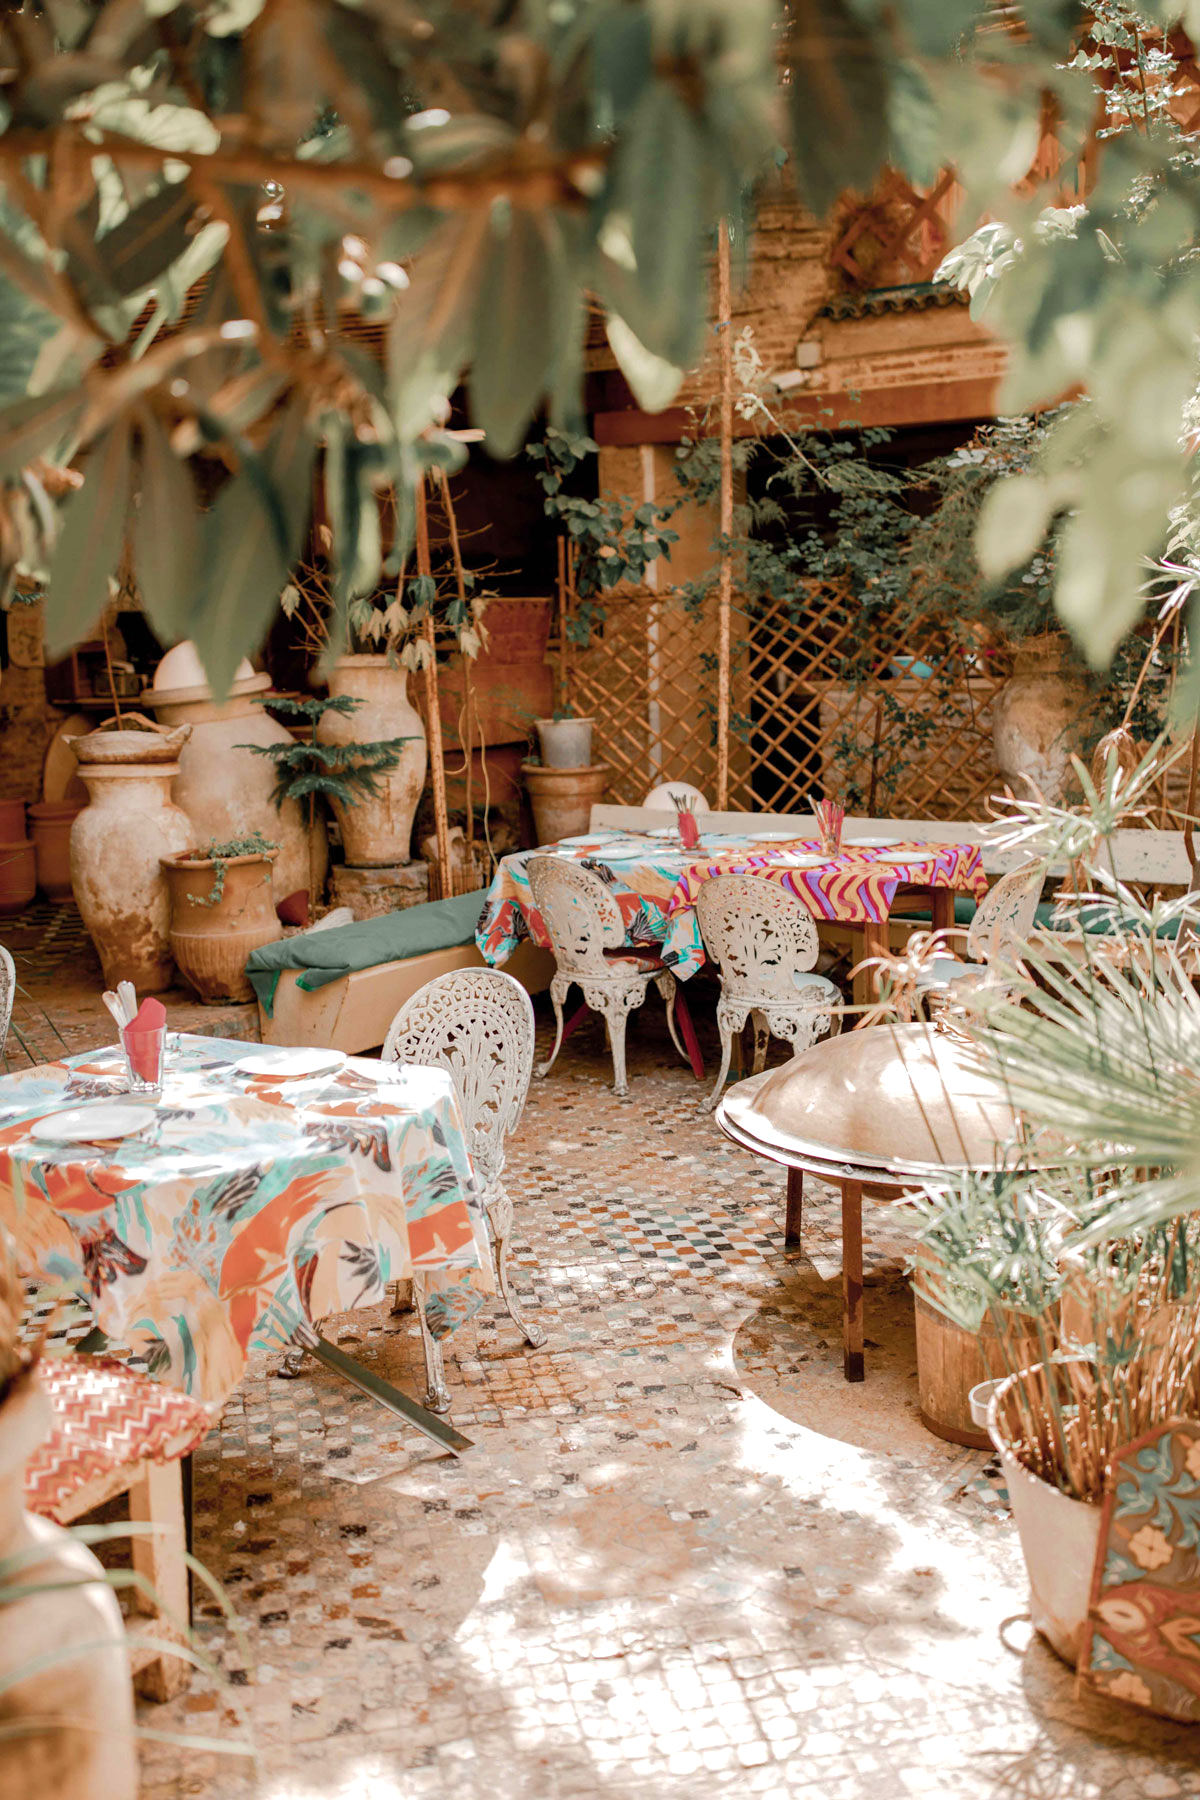 1-Top-things-to-do-in-Fez-Bucket-list-kelseyinlondon-Kelsey-Heinrichs--What-to-do-in-Fez--Where-to-go-in-Fez-top-places-in-Fez-ruined-gardens